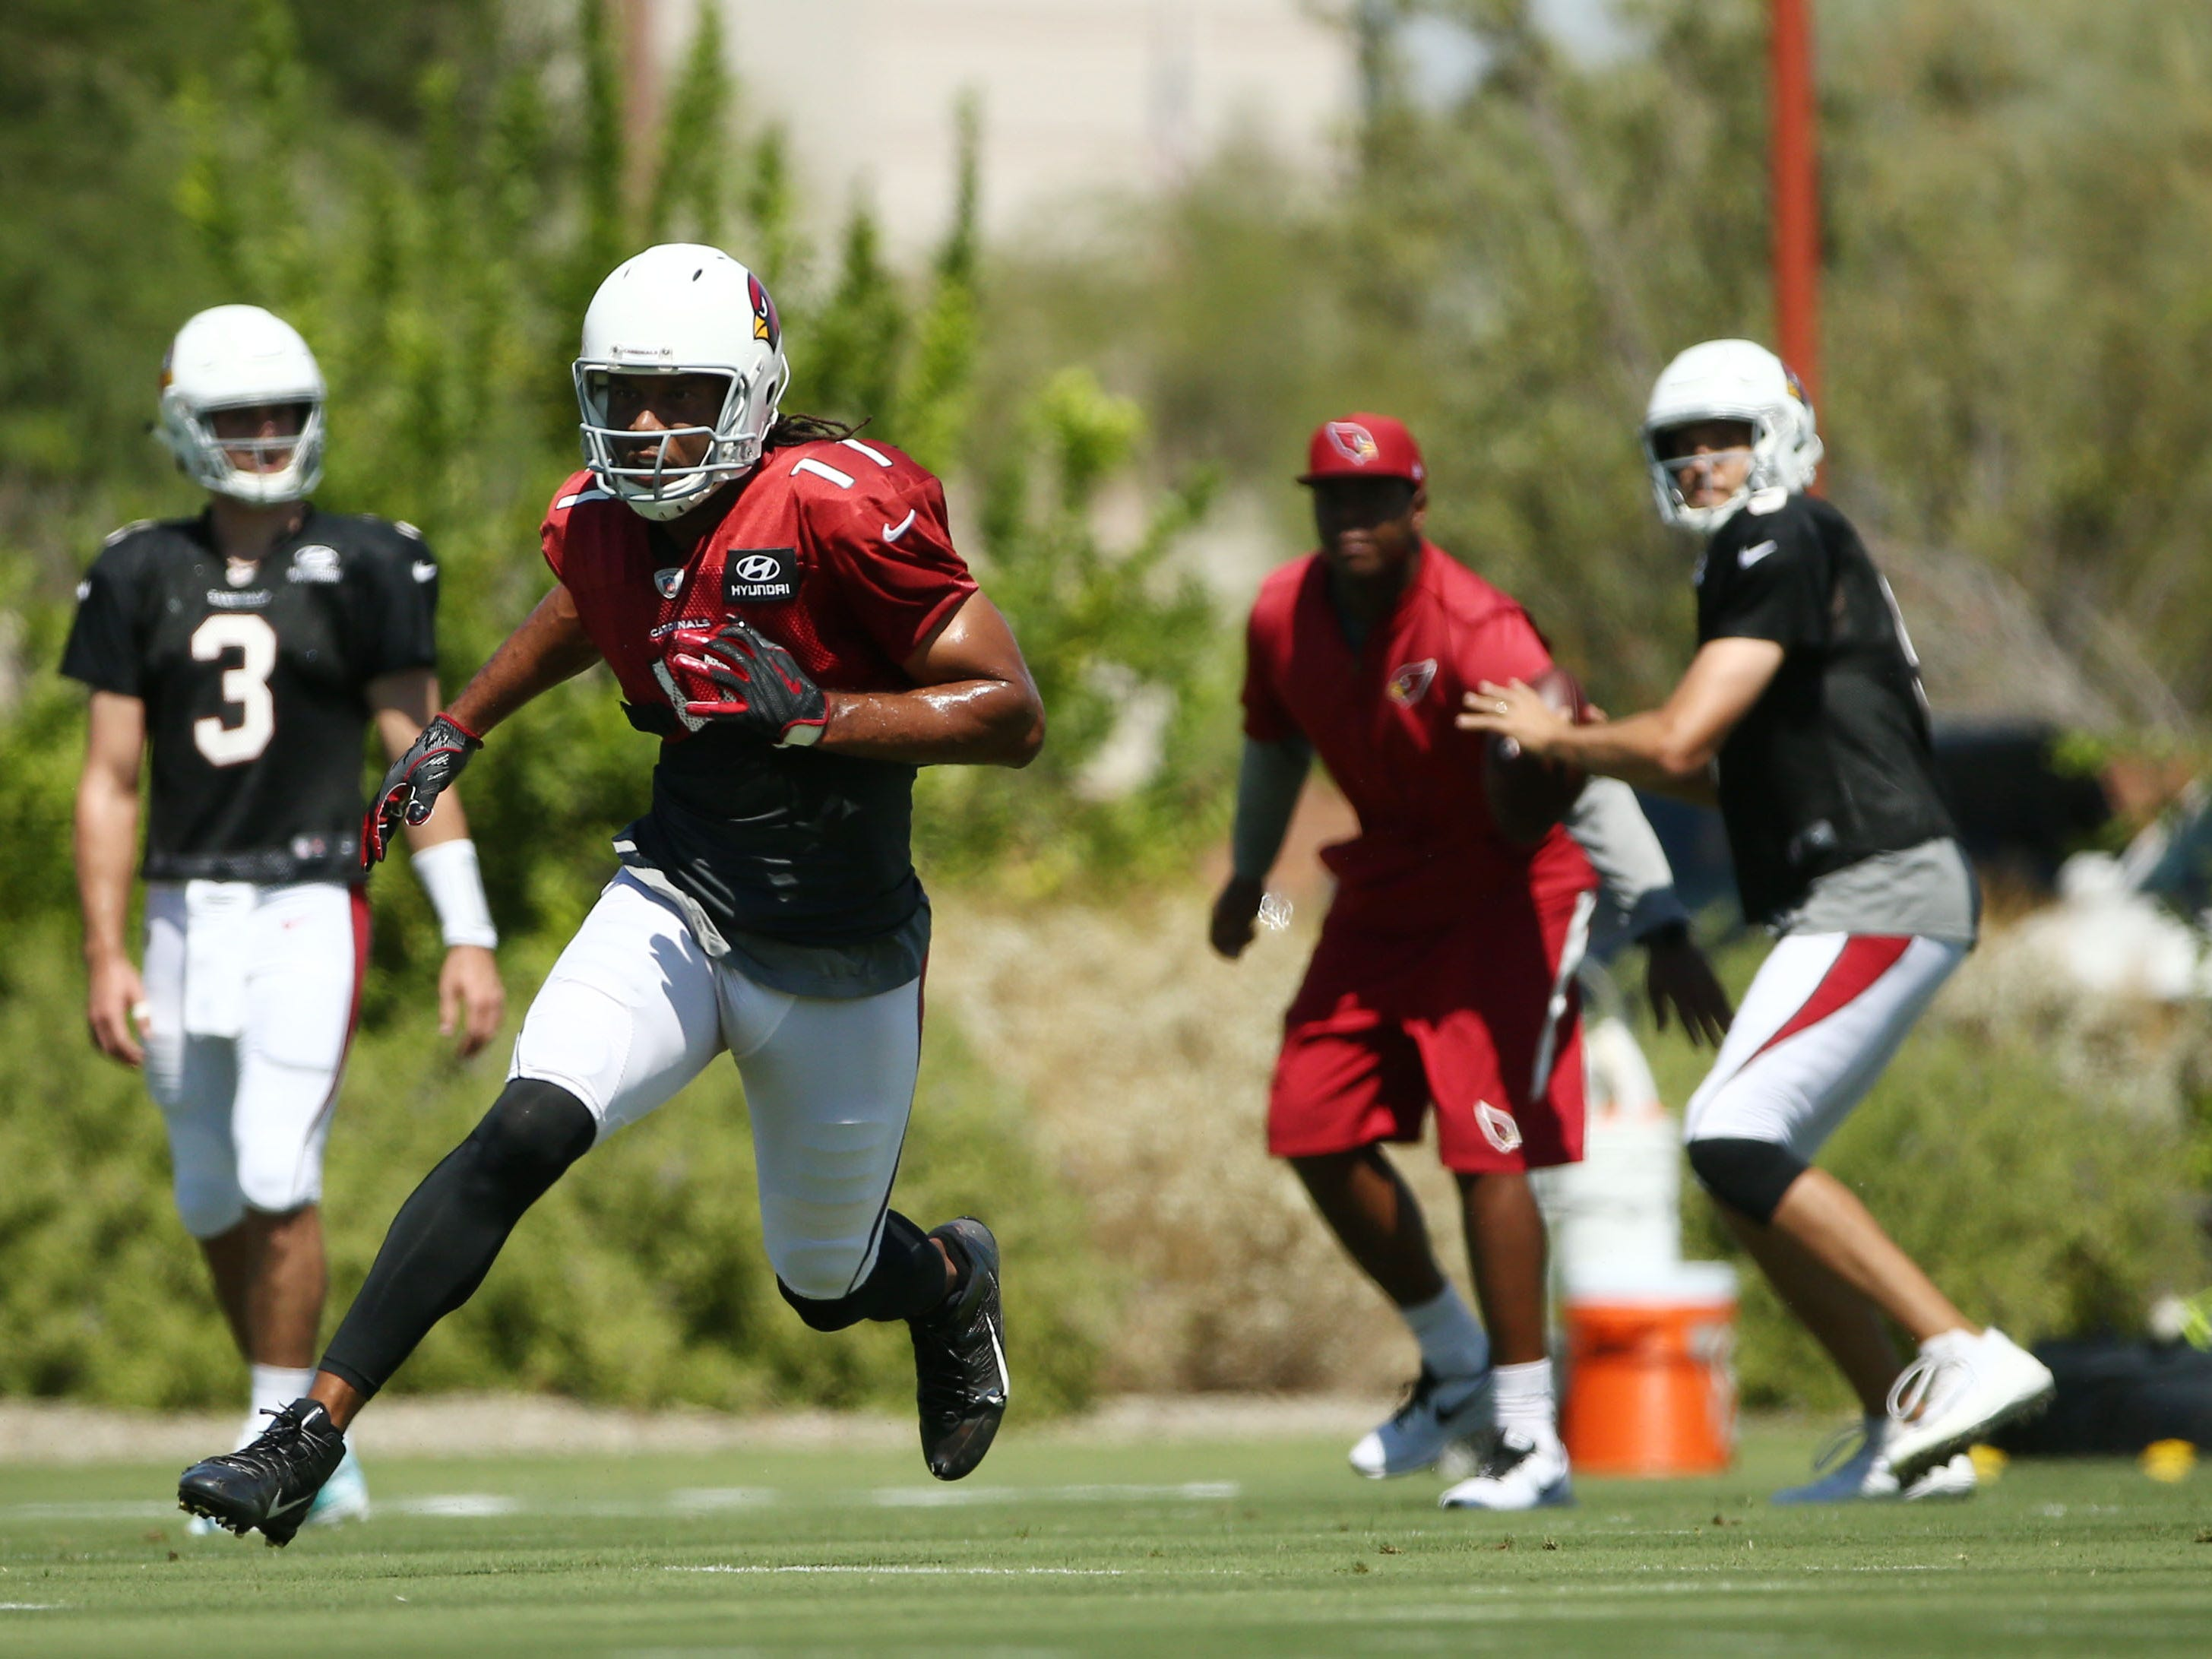 Arizona Cardinals quarterback Sam Bradford throws a pass to wide receiver Larry Fitzgerald during practice on Sep. 5, 2018 at the Arizona Cardinals Training Facility in Tempe, Ariz.